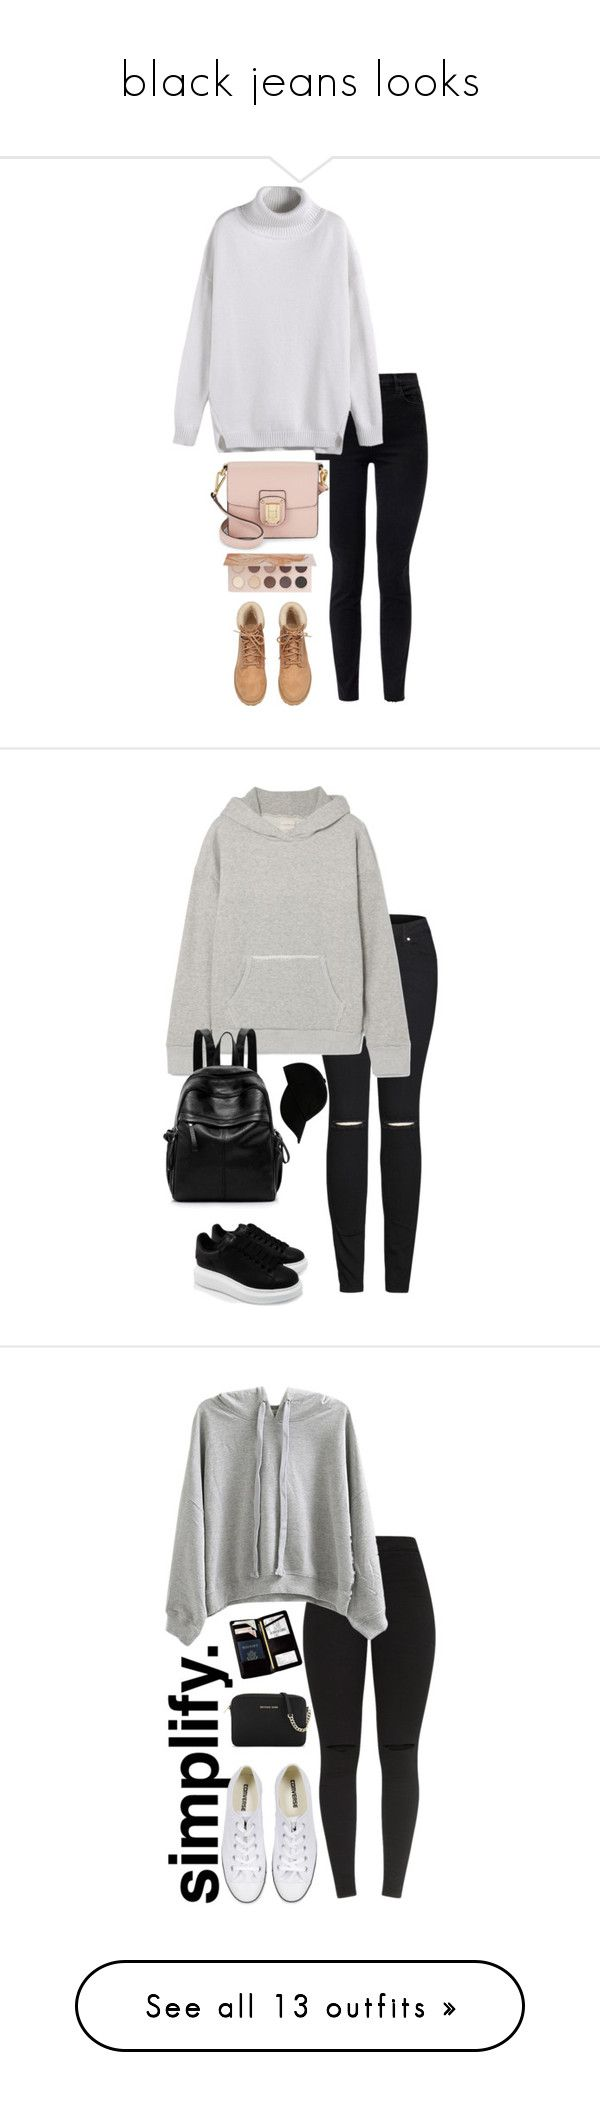 """black jeans looks"" by m-gorodetskaya ❤ liked on Polyvore featuring J Brand, H&M, Sam Edelman, ZOEVA, 2LUV, Simon Miller, Alexander McQueen, STONE ISLAND, Royce Leather and WithChic"